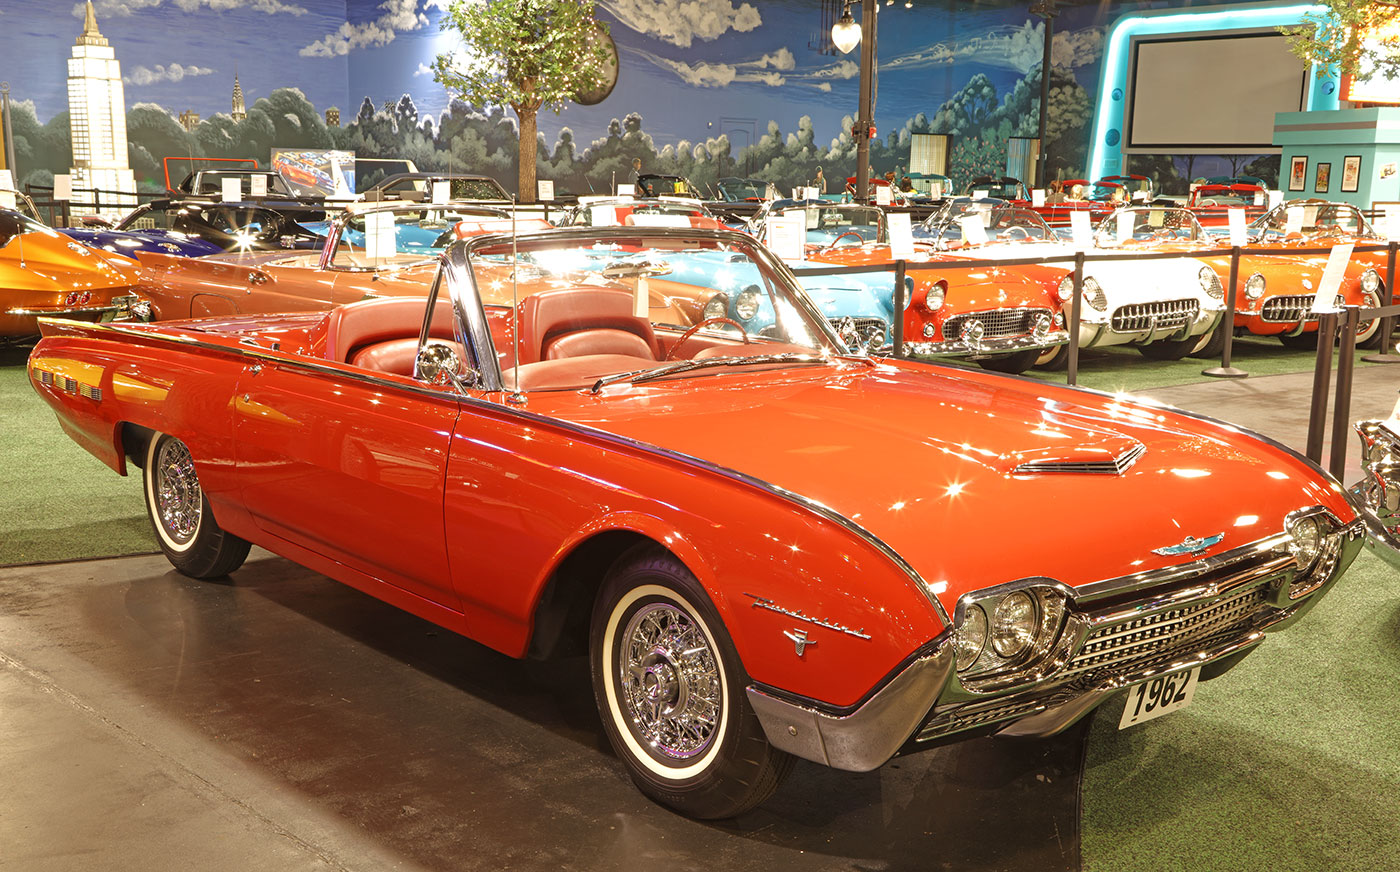 1962 Ford Thunderbird Convertible Welcome To Cars Of Dreams Museum 1954